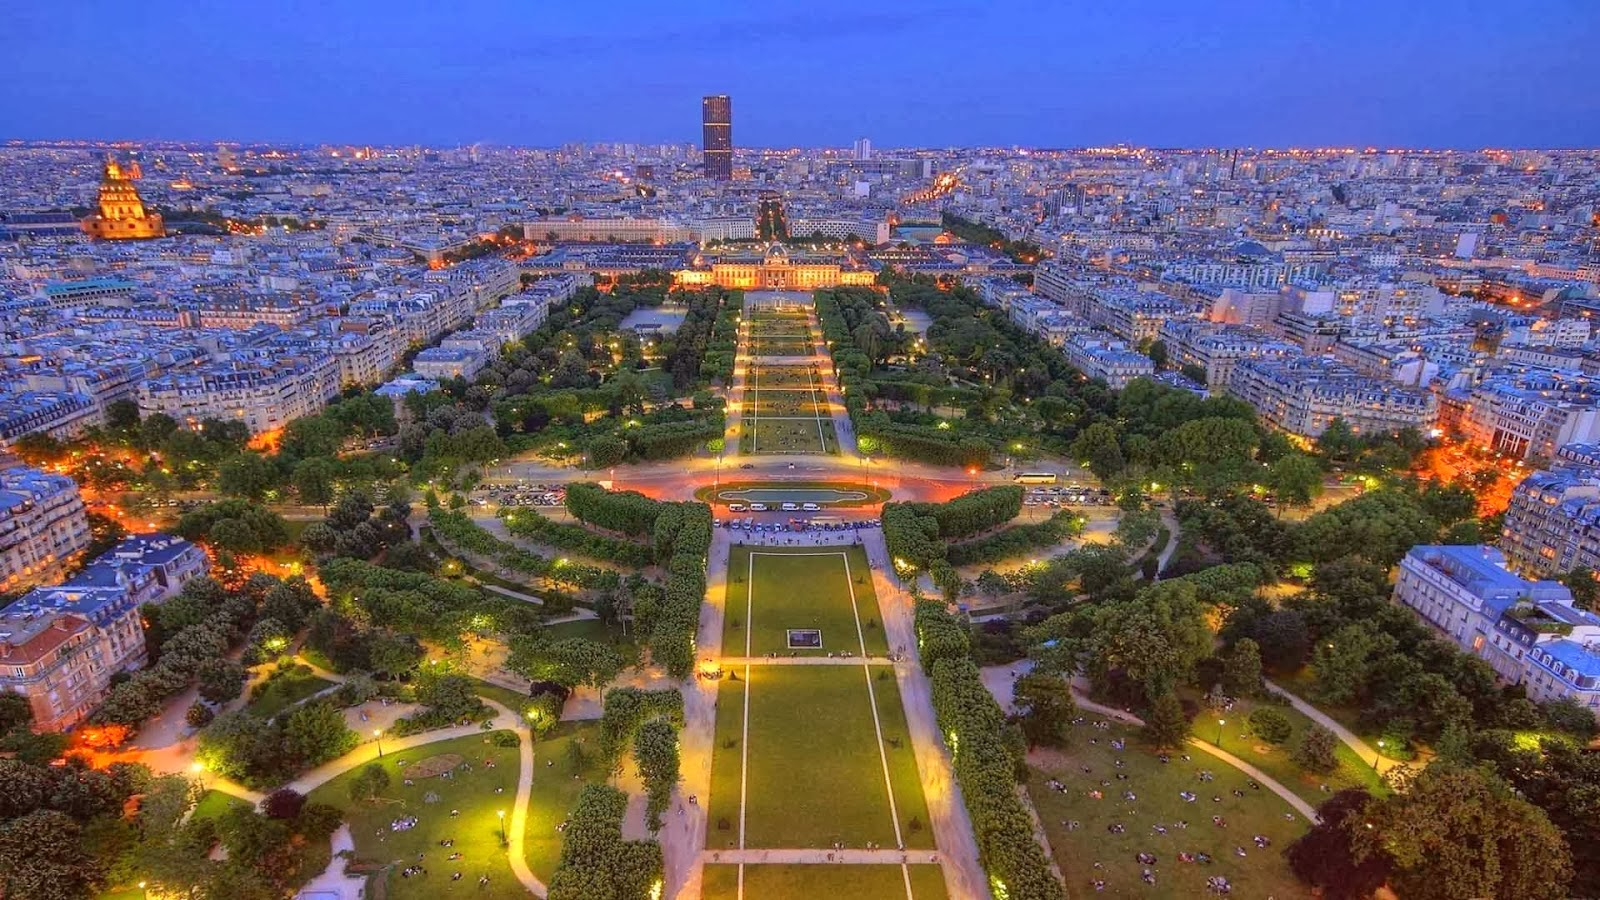 hd wallpapers in 1080p paris city hd wallpapers in 1080p paris city hd 1600x900